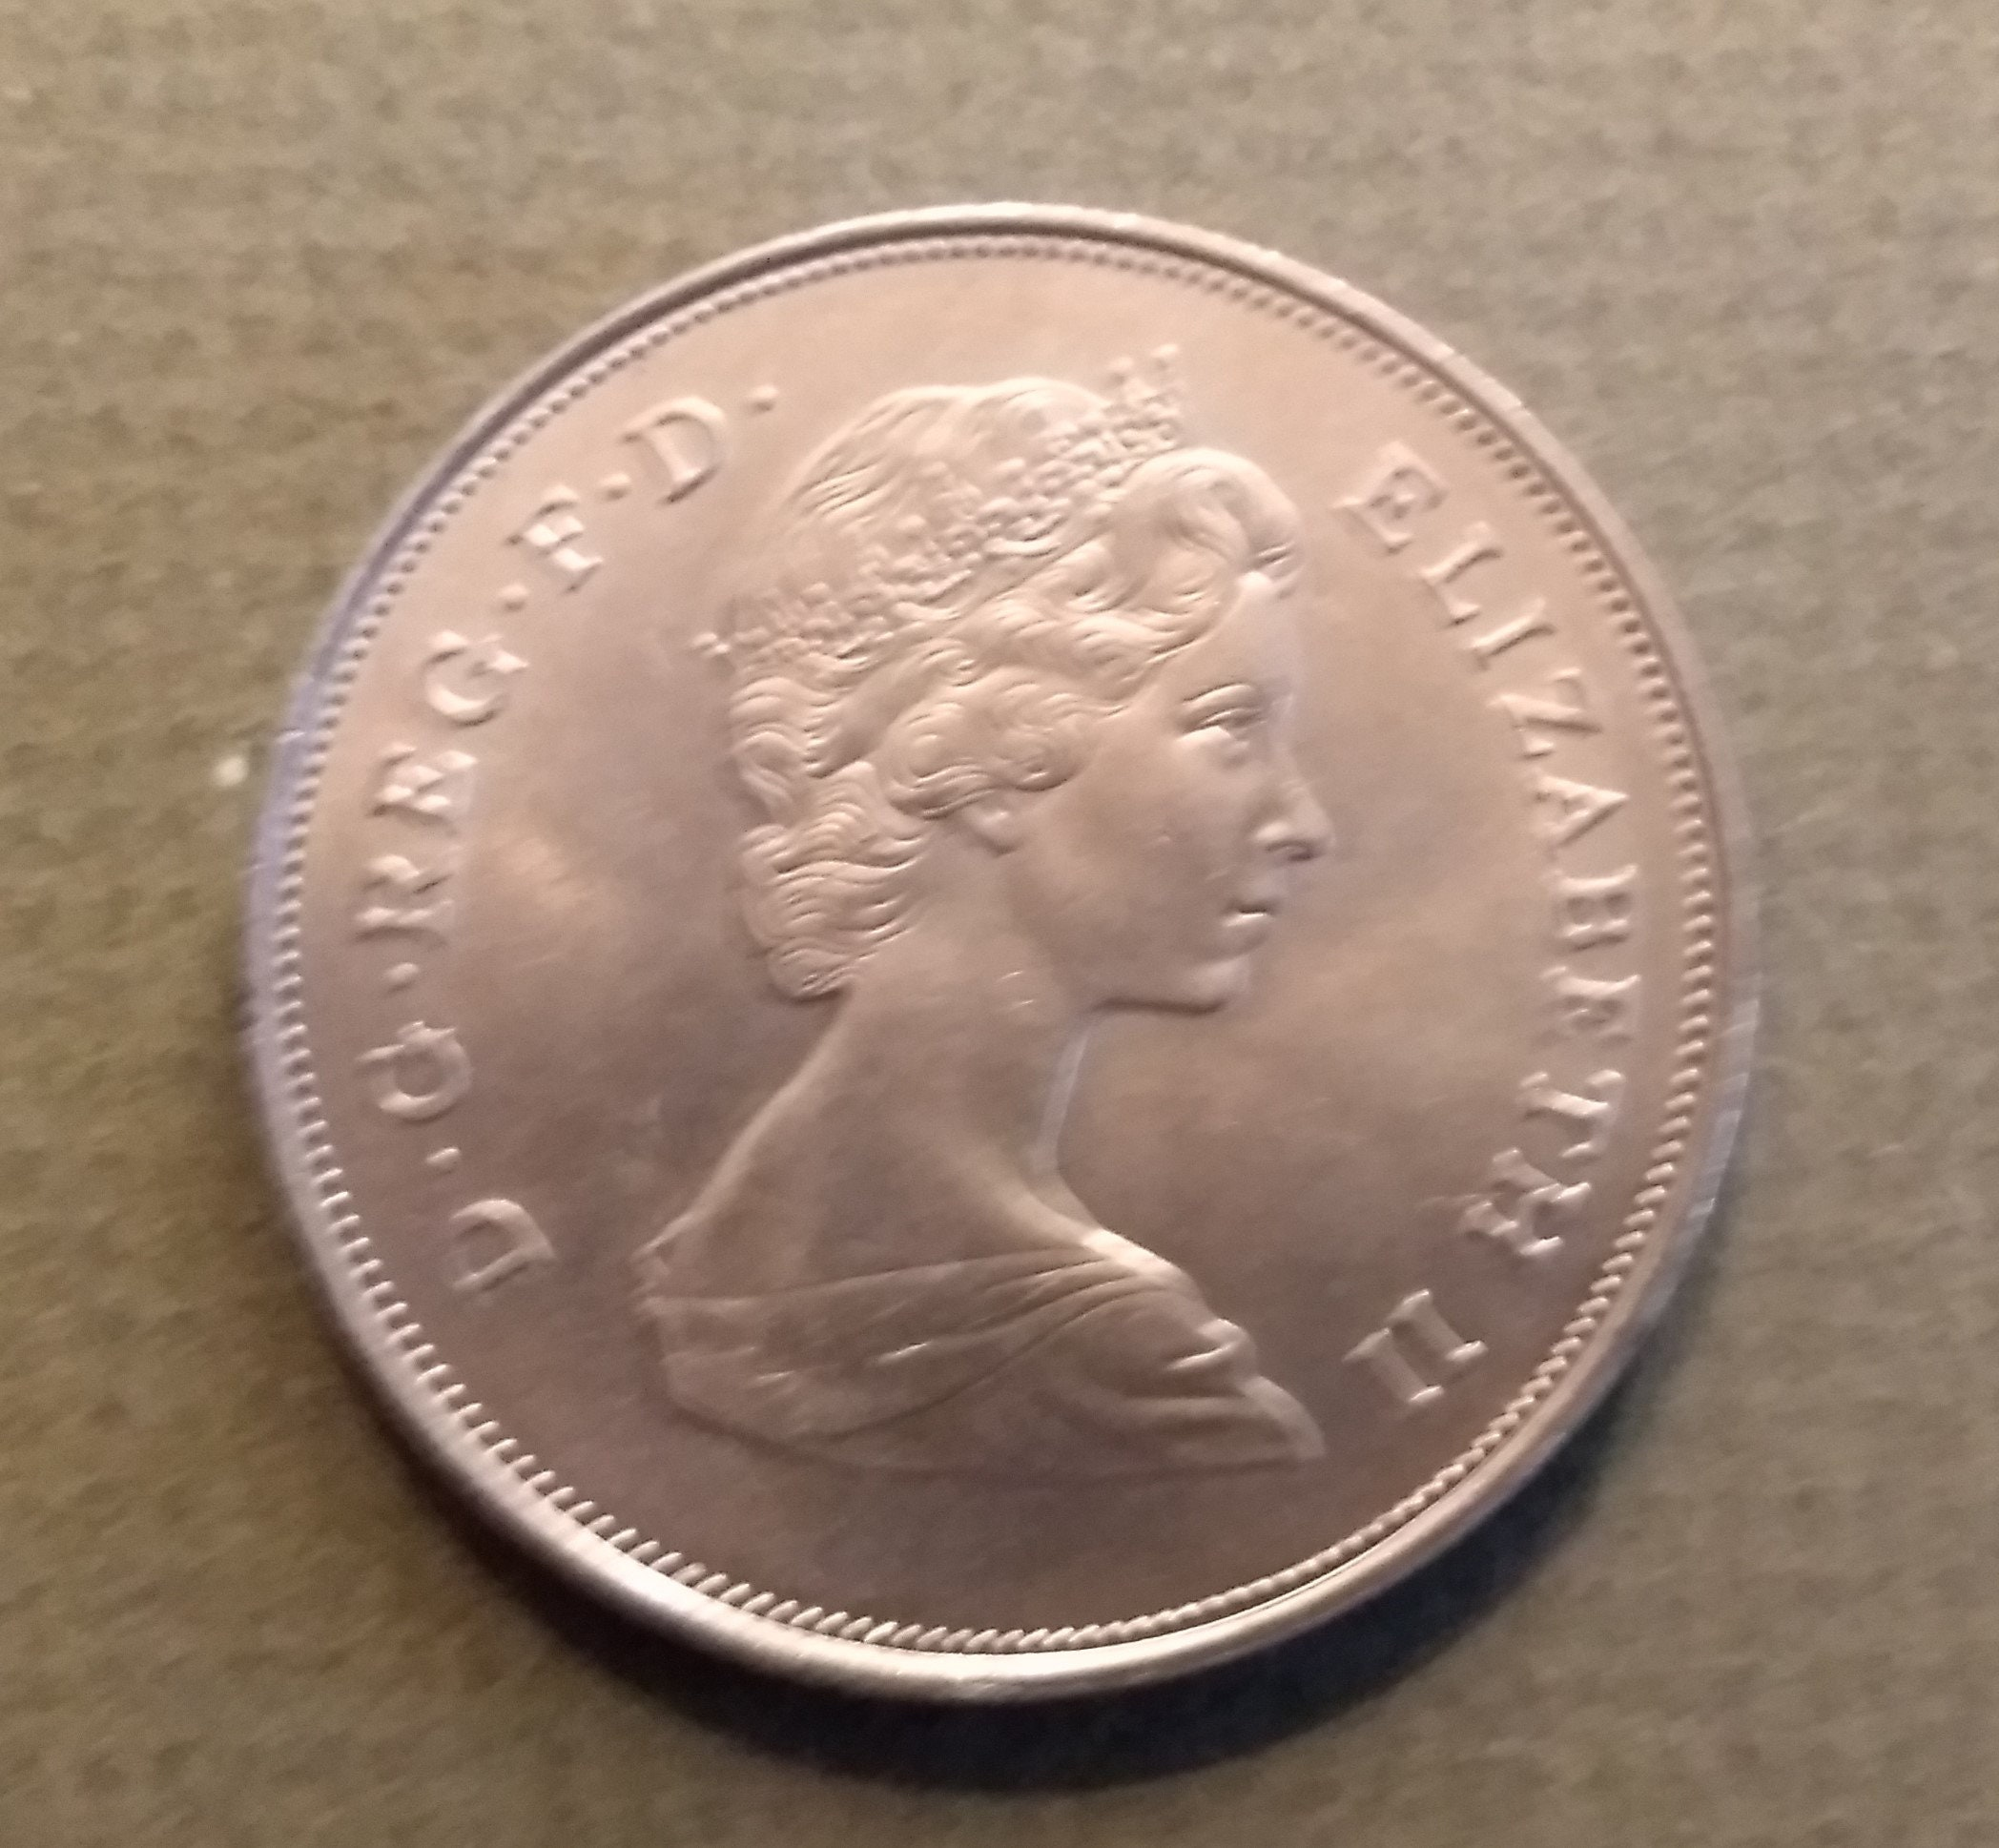 Coins Great Britain Prince Charles Lady Diana Spencer Wedding Crown 1981 Uncirculated 9031